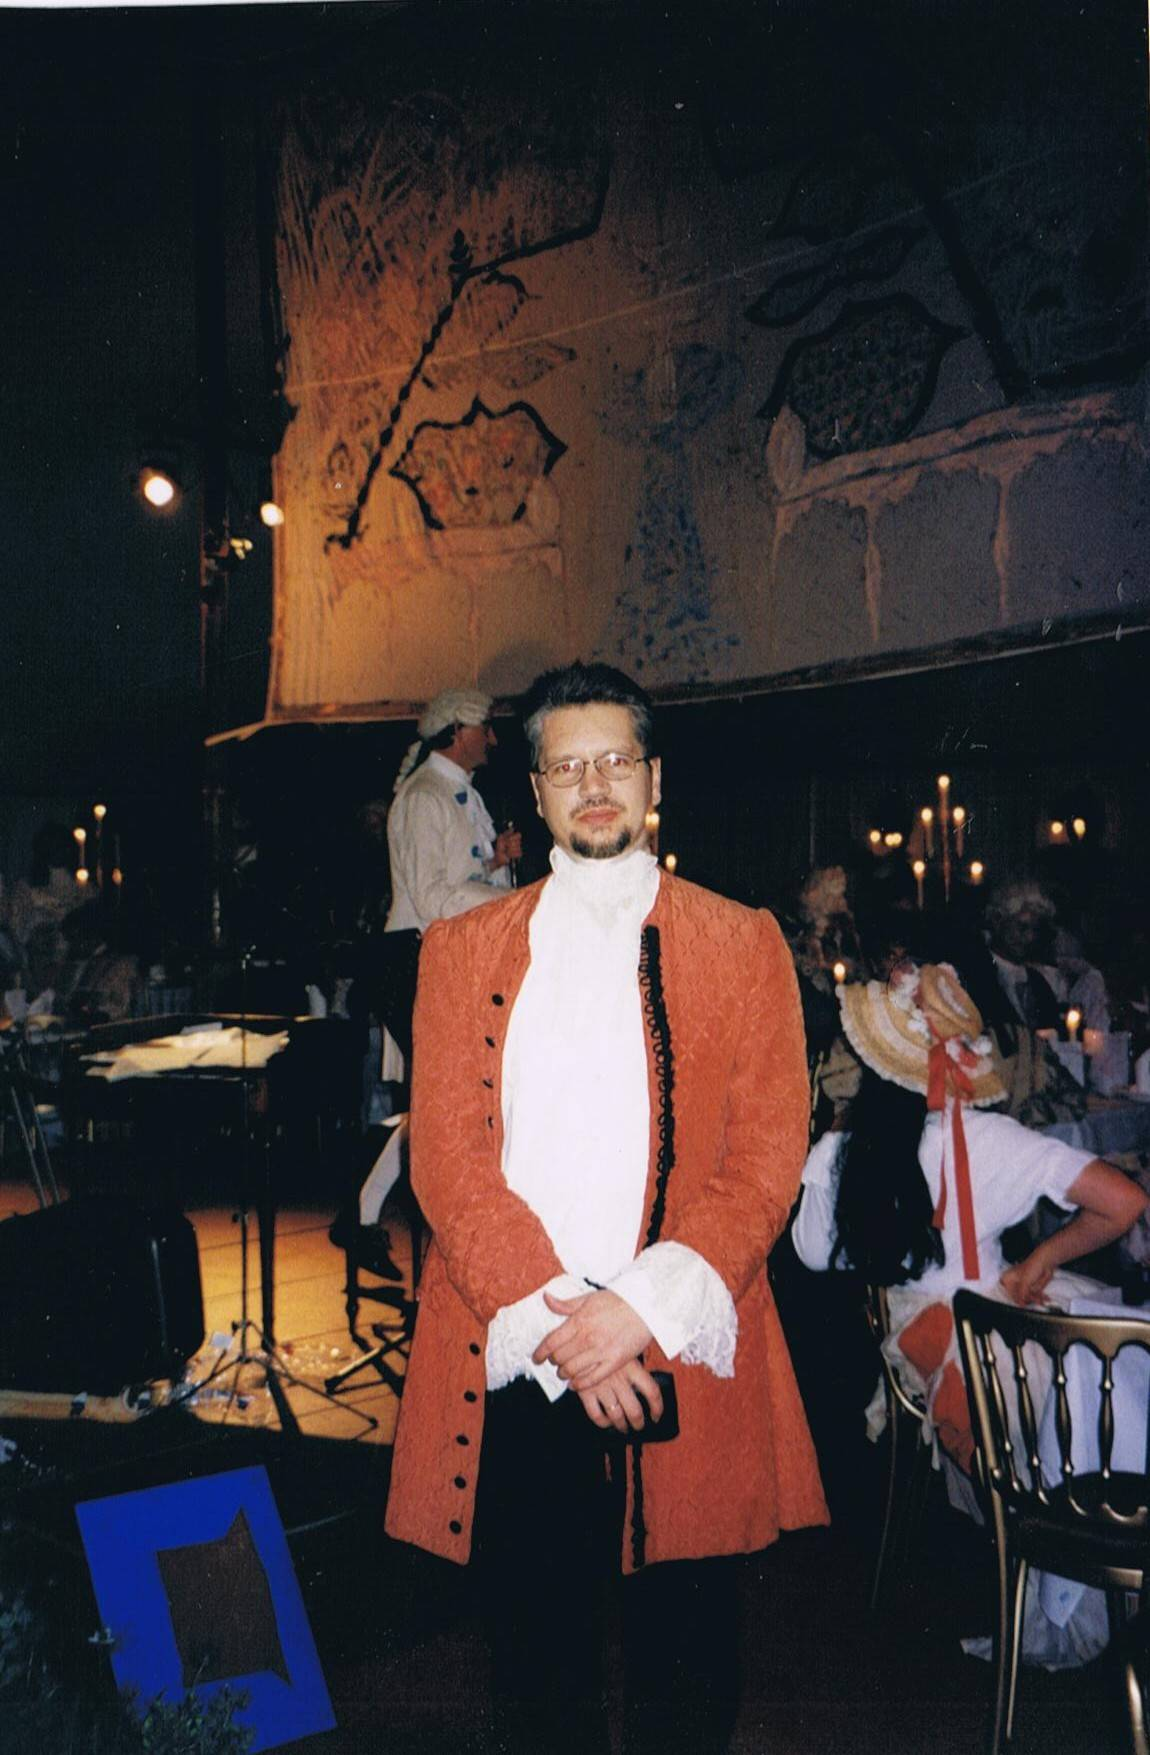 At the Ball, Suffolk, UK, 1998